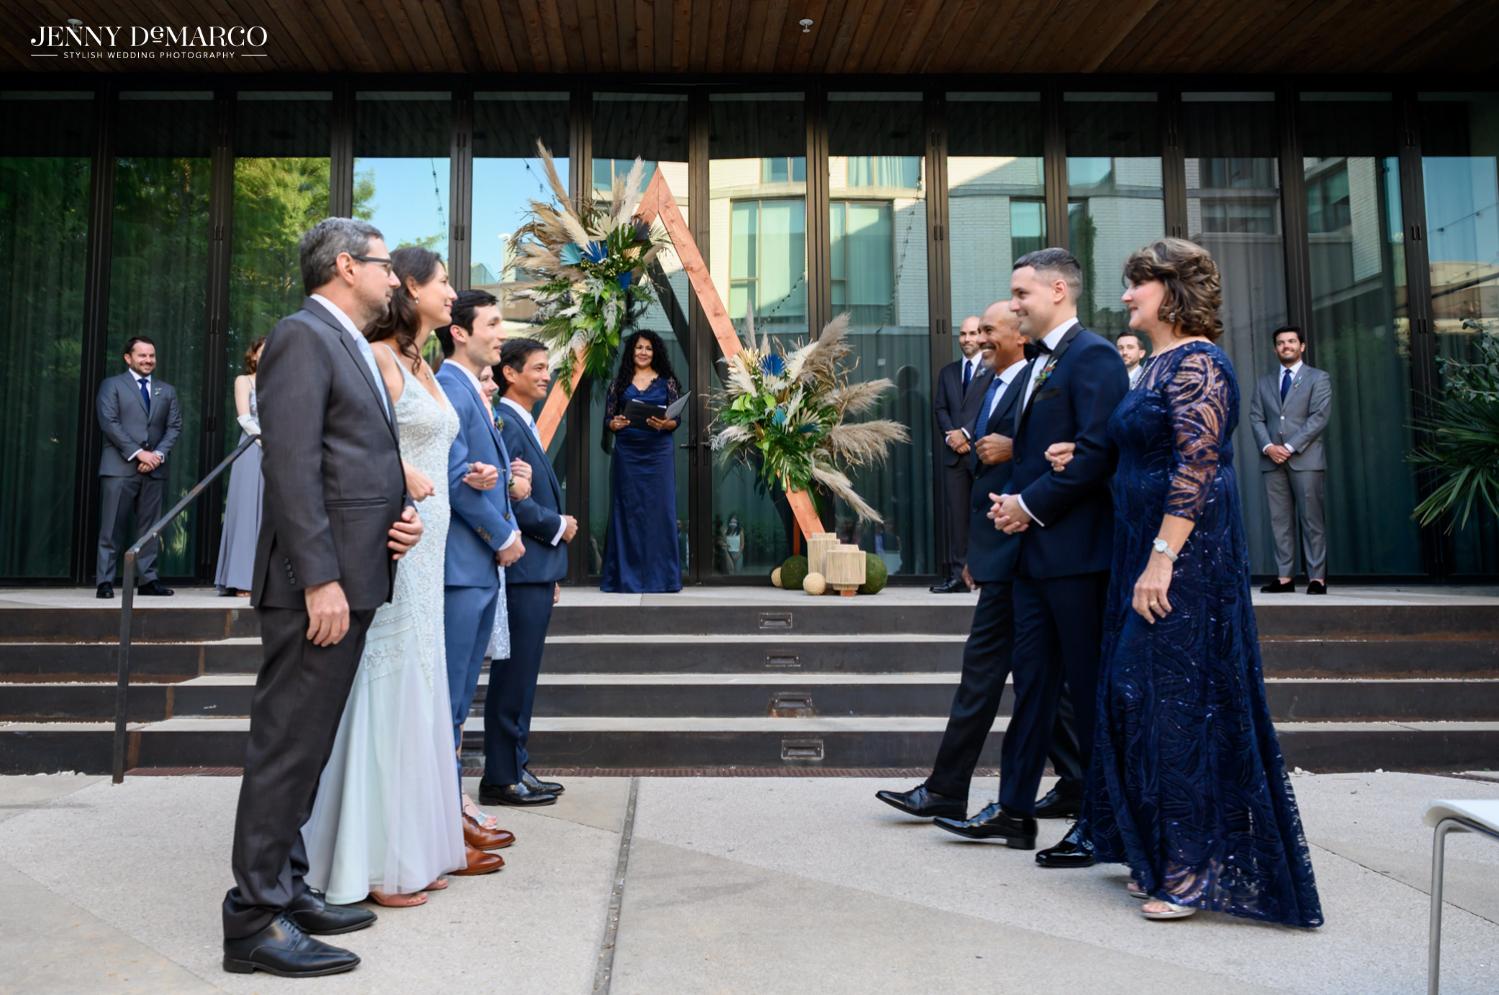 Grooms and their families facing each other at the end of the aisles